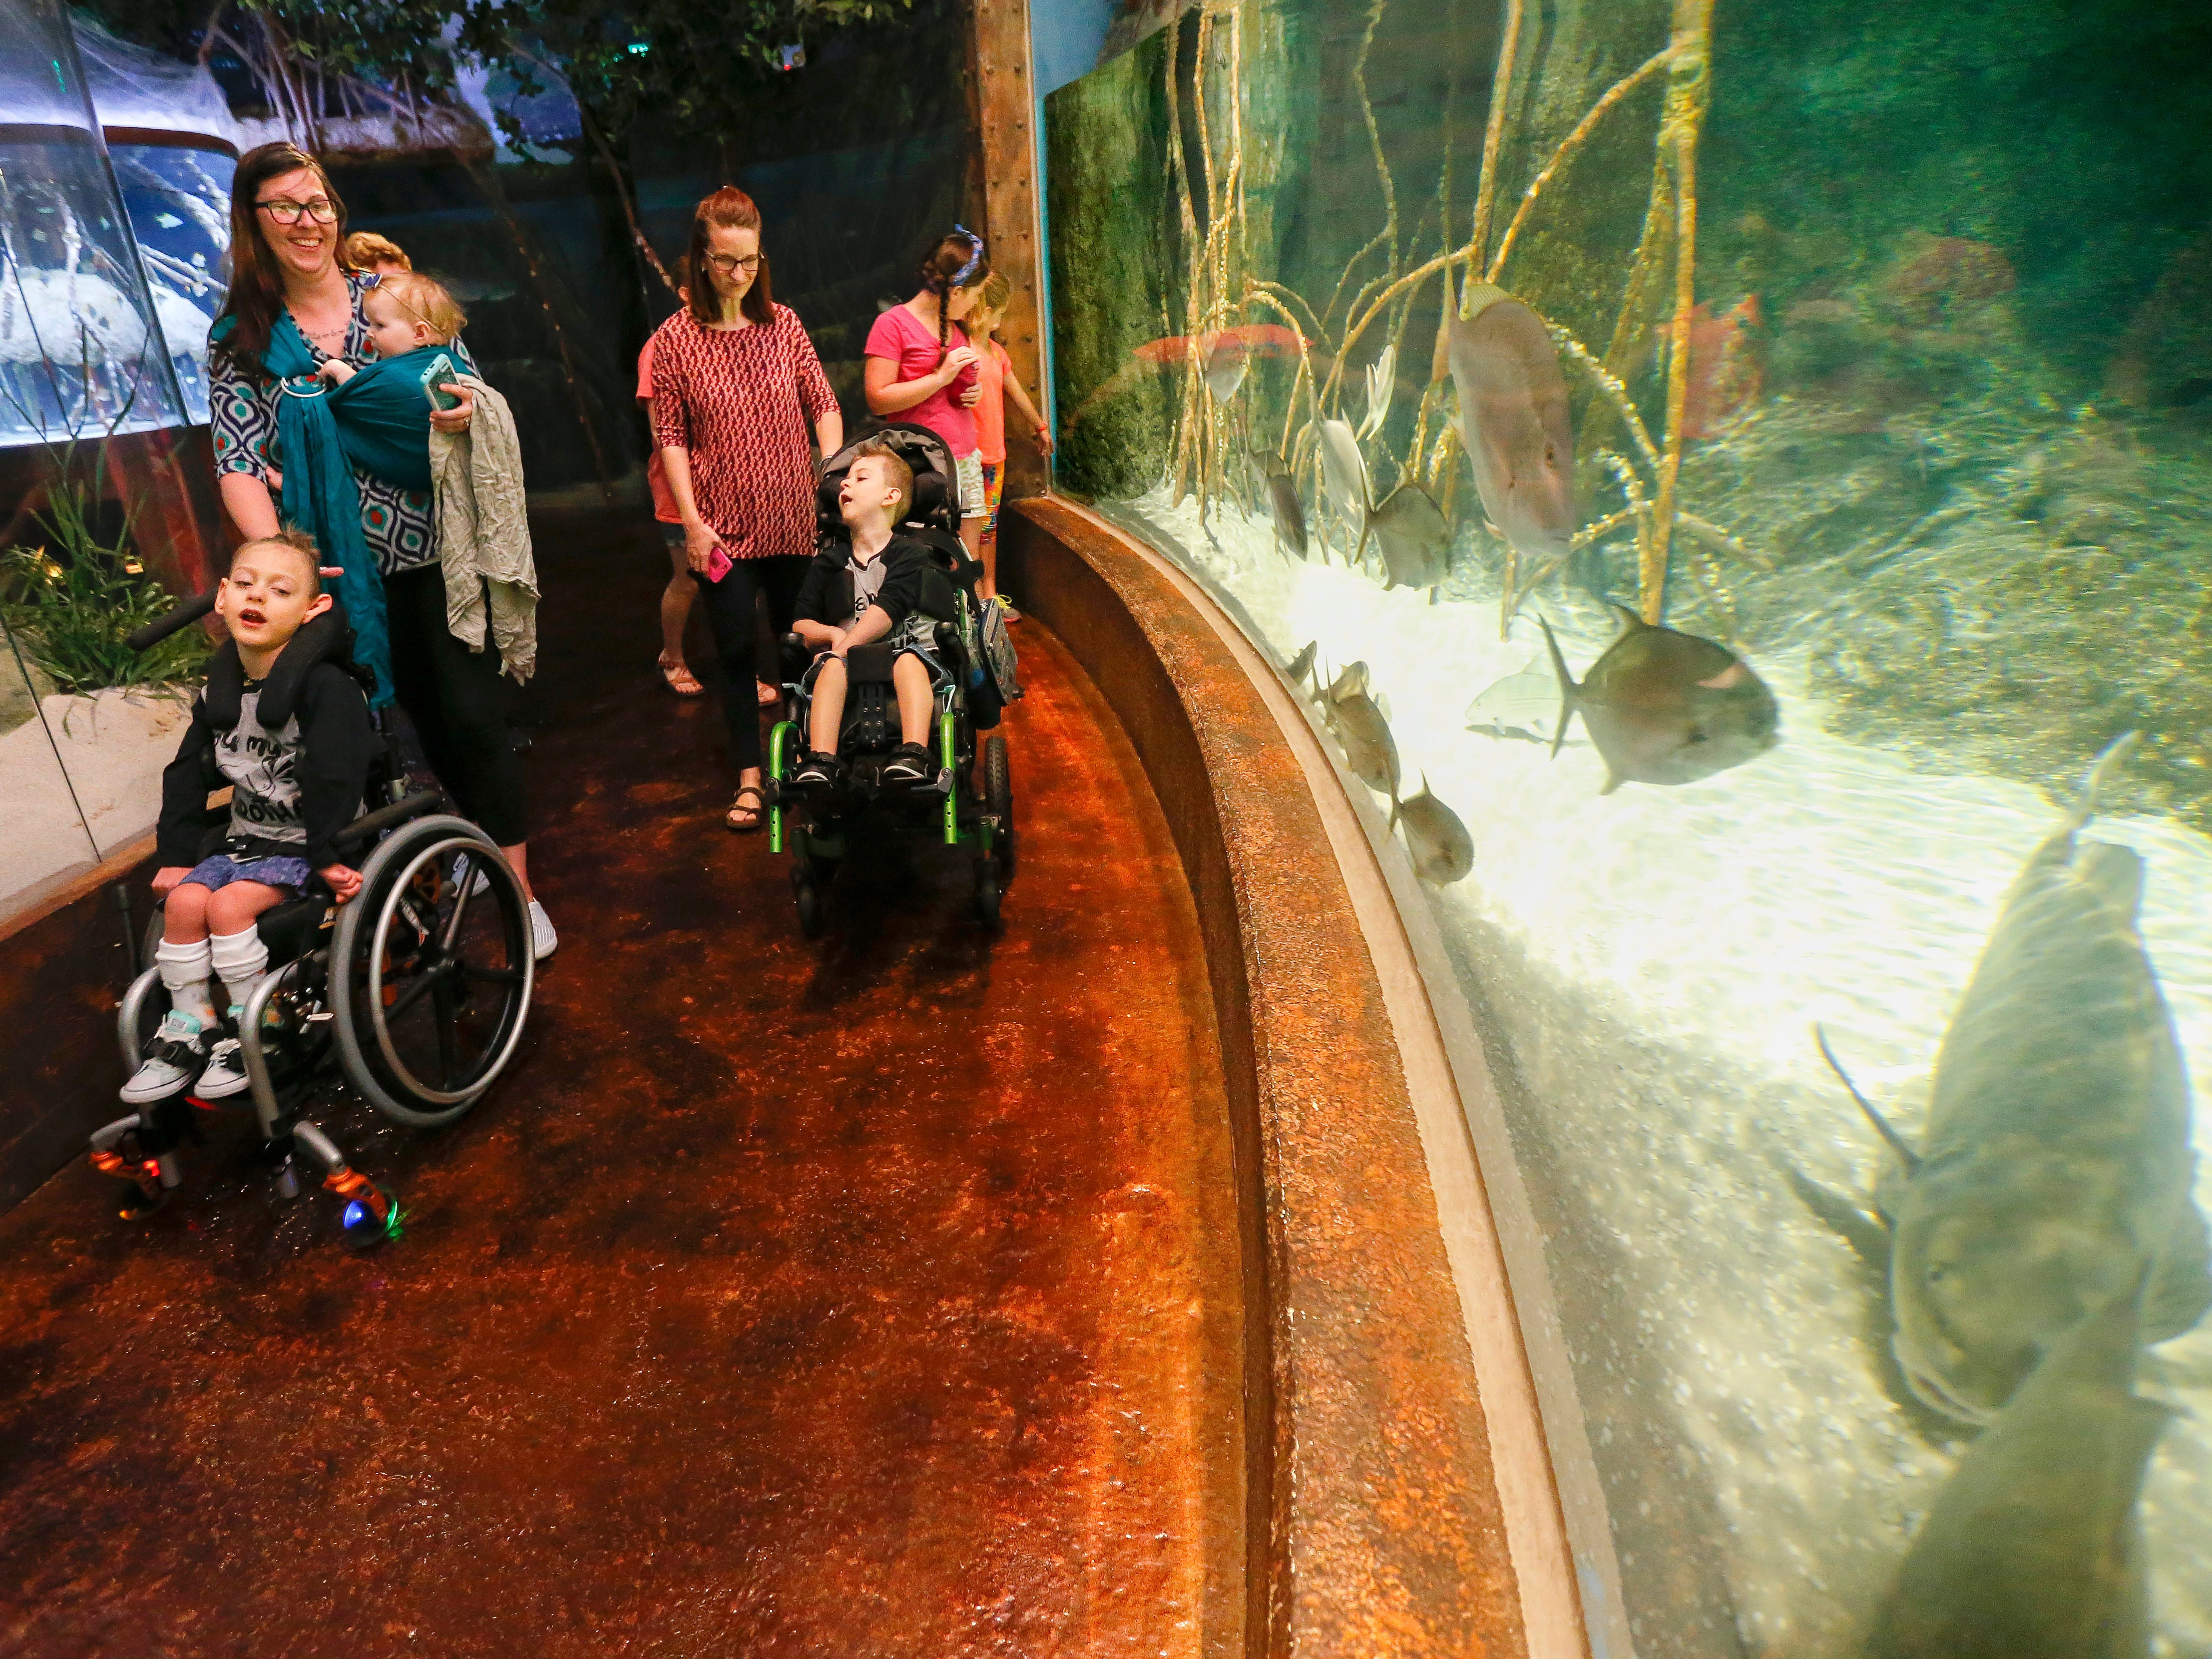 Ashley Markum pushes Ayden Markum, 5, while holding her daughter Letty, 7-months, while visiting the Wonder's of Wildlife Aquarium with Ayden's friend Raylan Callaway, 6, right, and his family on Wednesday, Aug. 22, 2018.